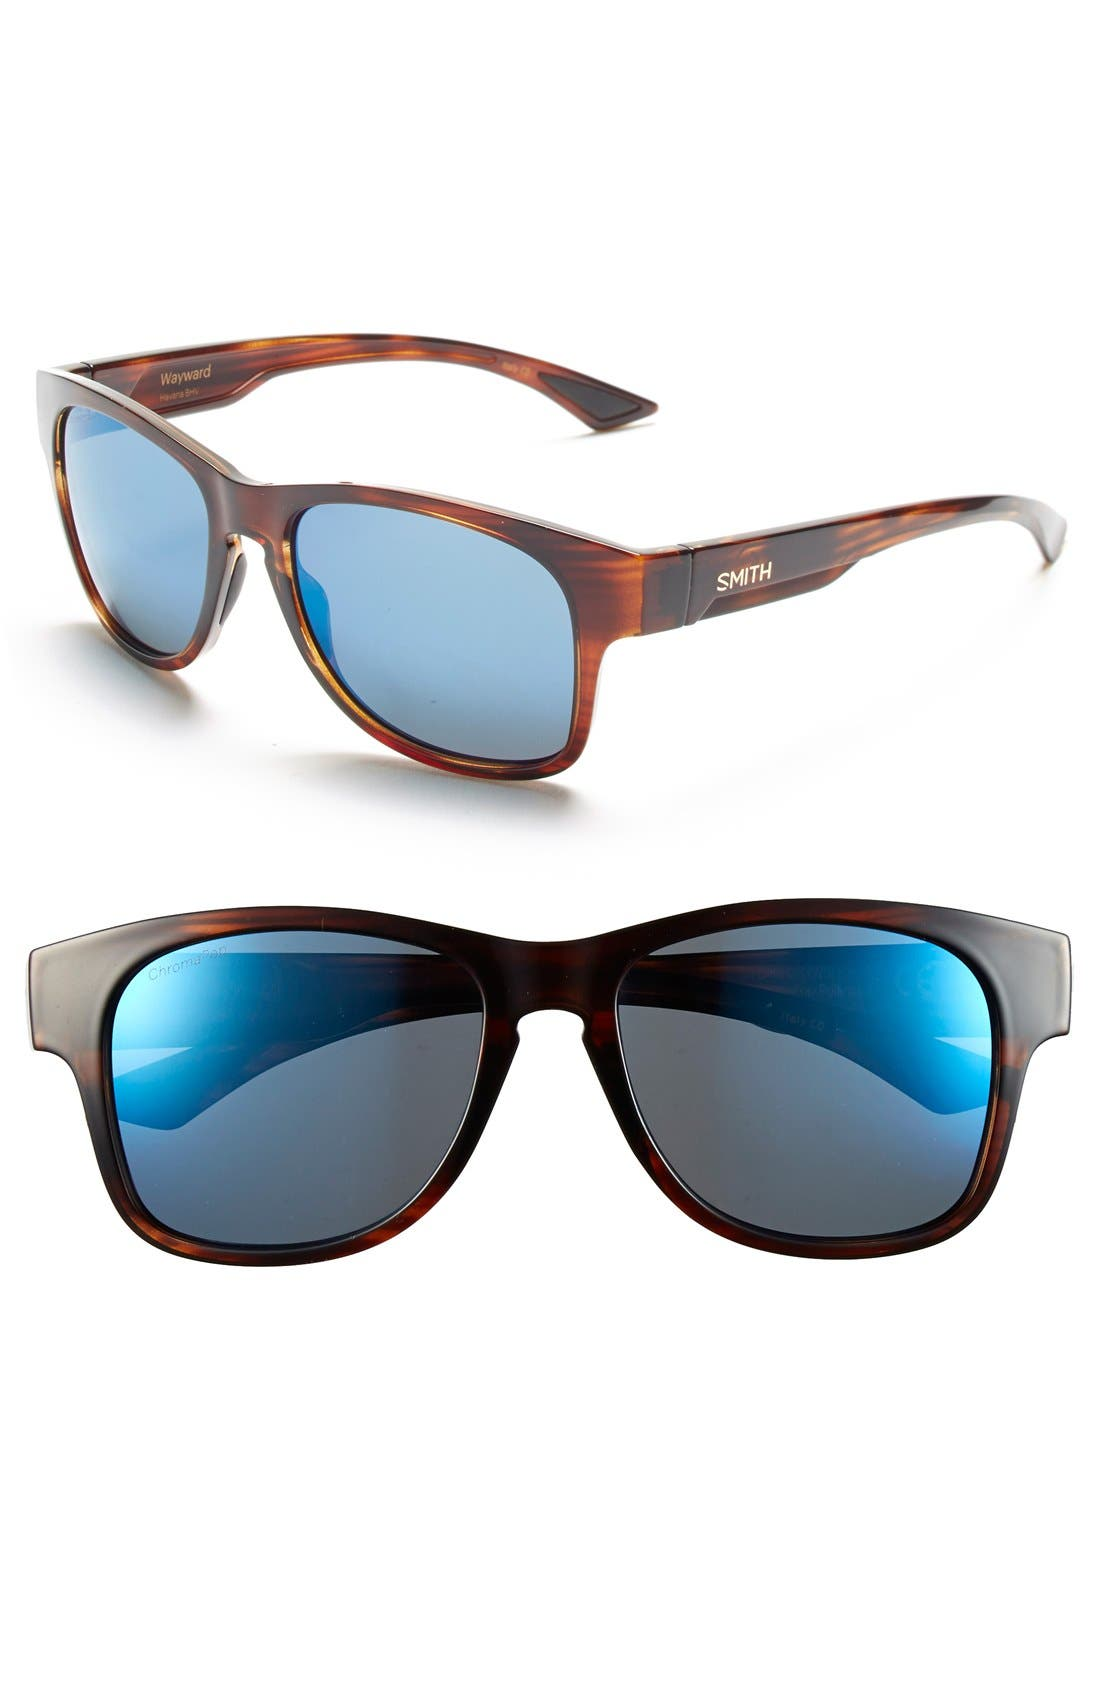 'Wayward' 54mm Polarized Sunglasses,                             Main thumbnail 1, color,                             HAVANA/ POLAR BLUE MIRROR